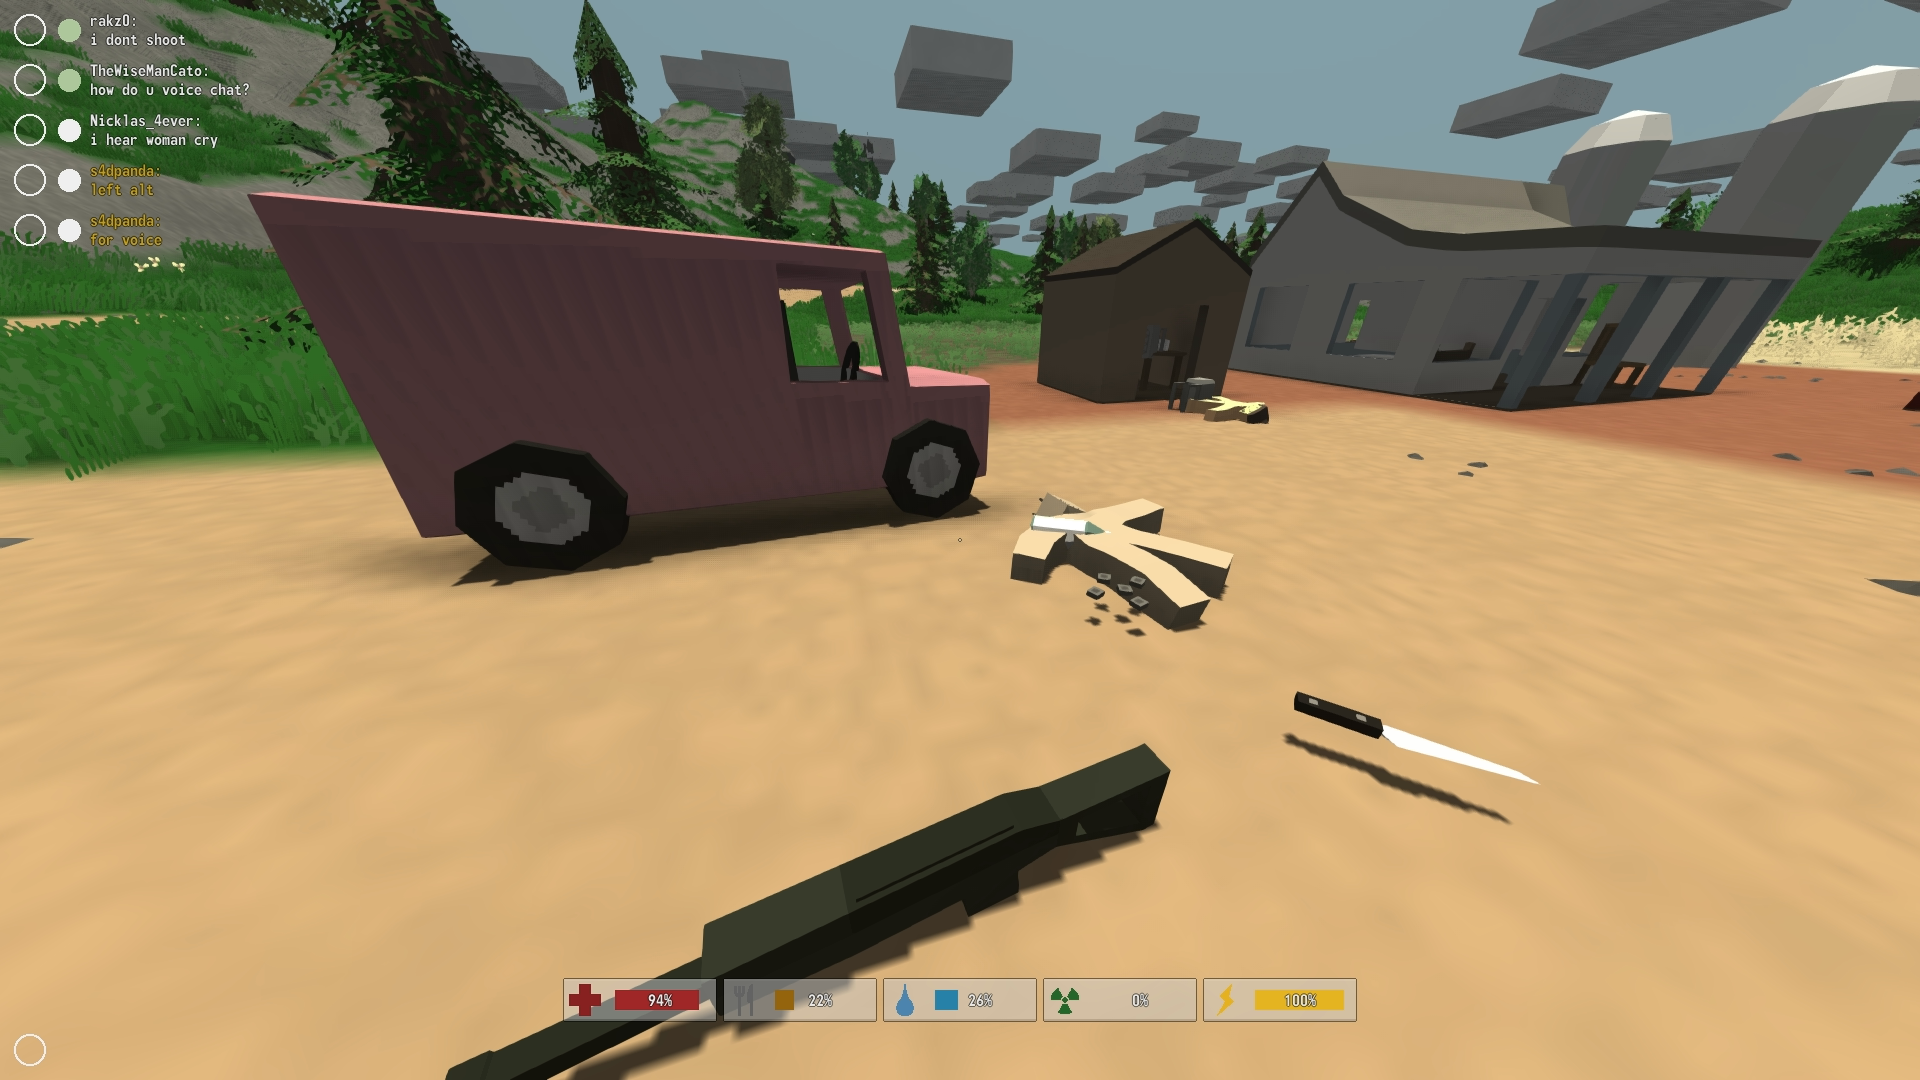 The scene of the crime in the new unturned zombie survival game the scene of the crime in the new unturned zombie survival game thats free to play gumiabroncs Image collections